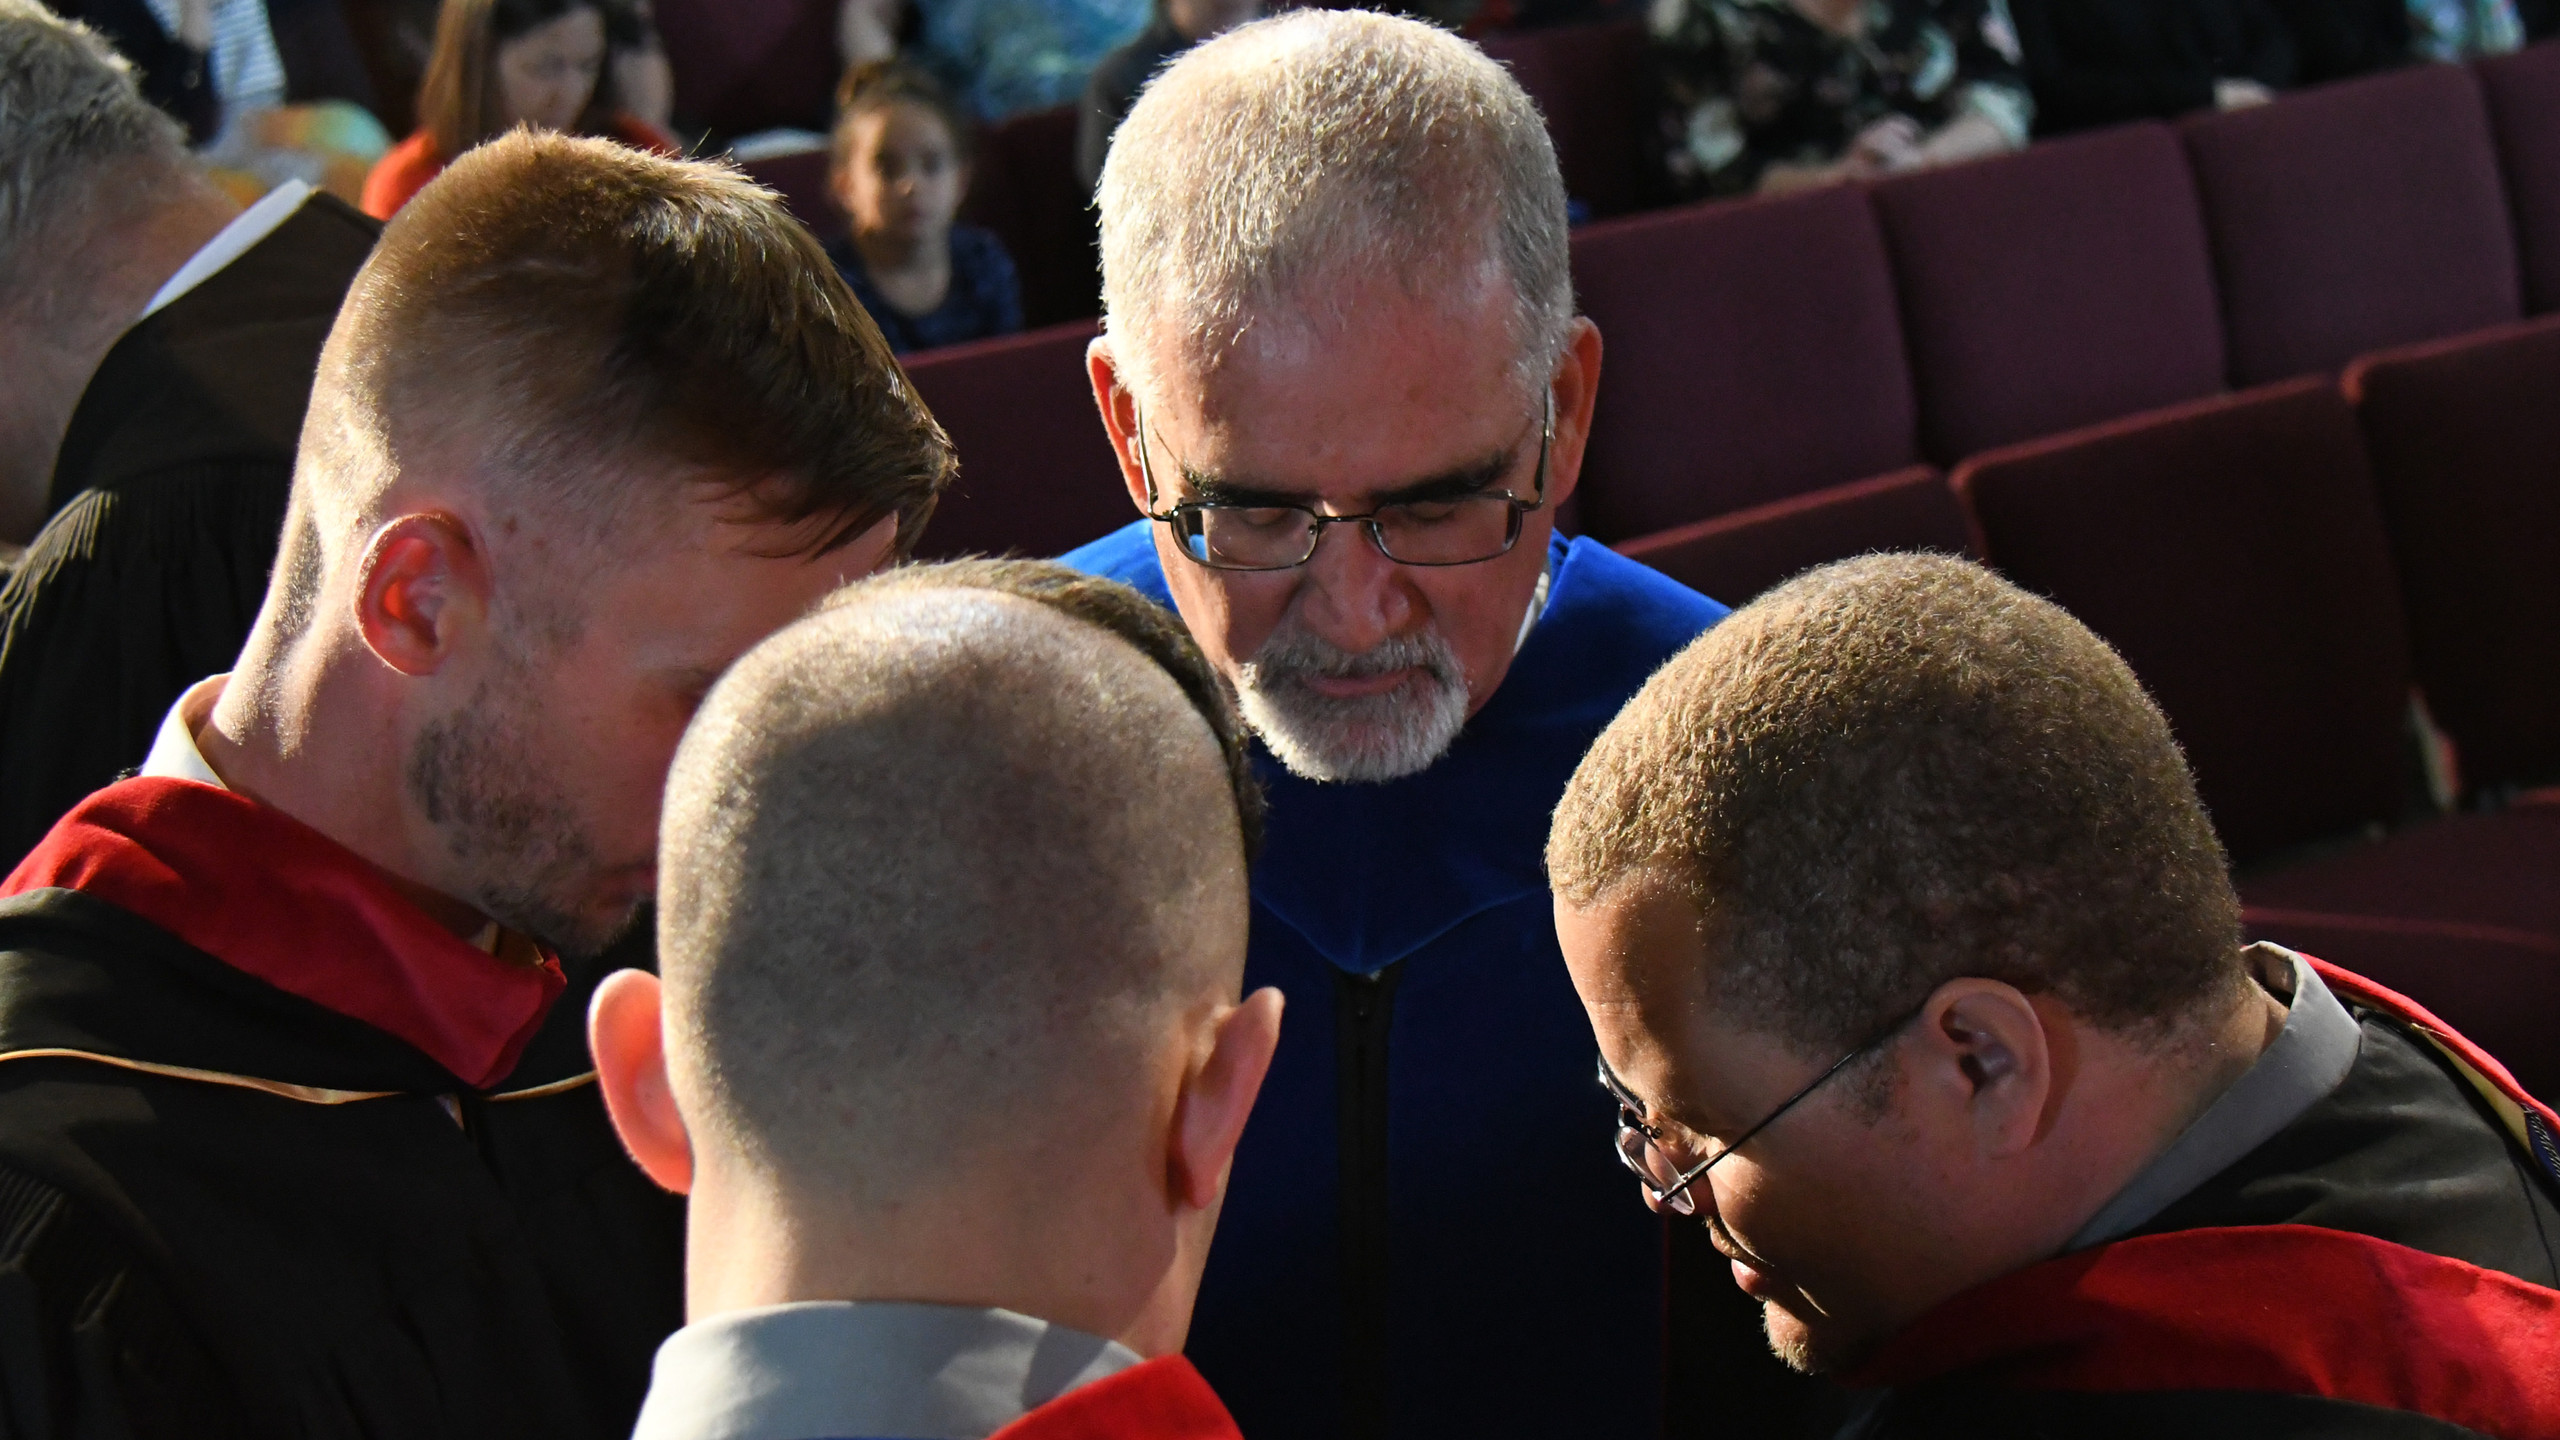 Gateway Seminary Rocky Mountain Campus Director Dr. Steve Veteto praying with Mark and other students as they embark upon the next phase of their lives and ministries.